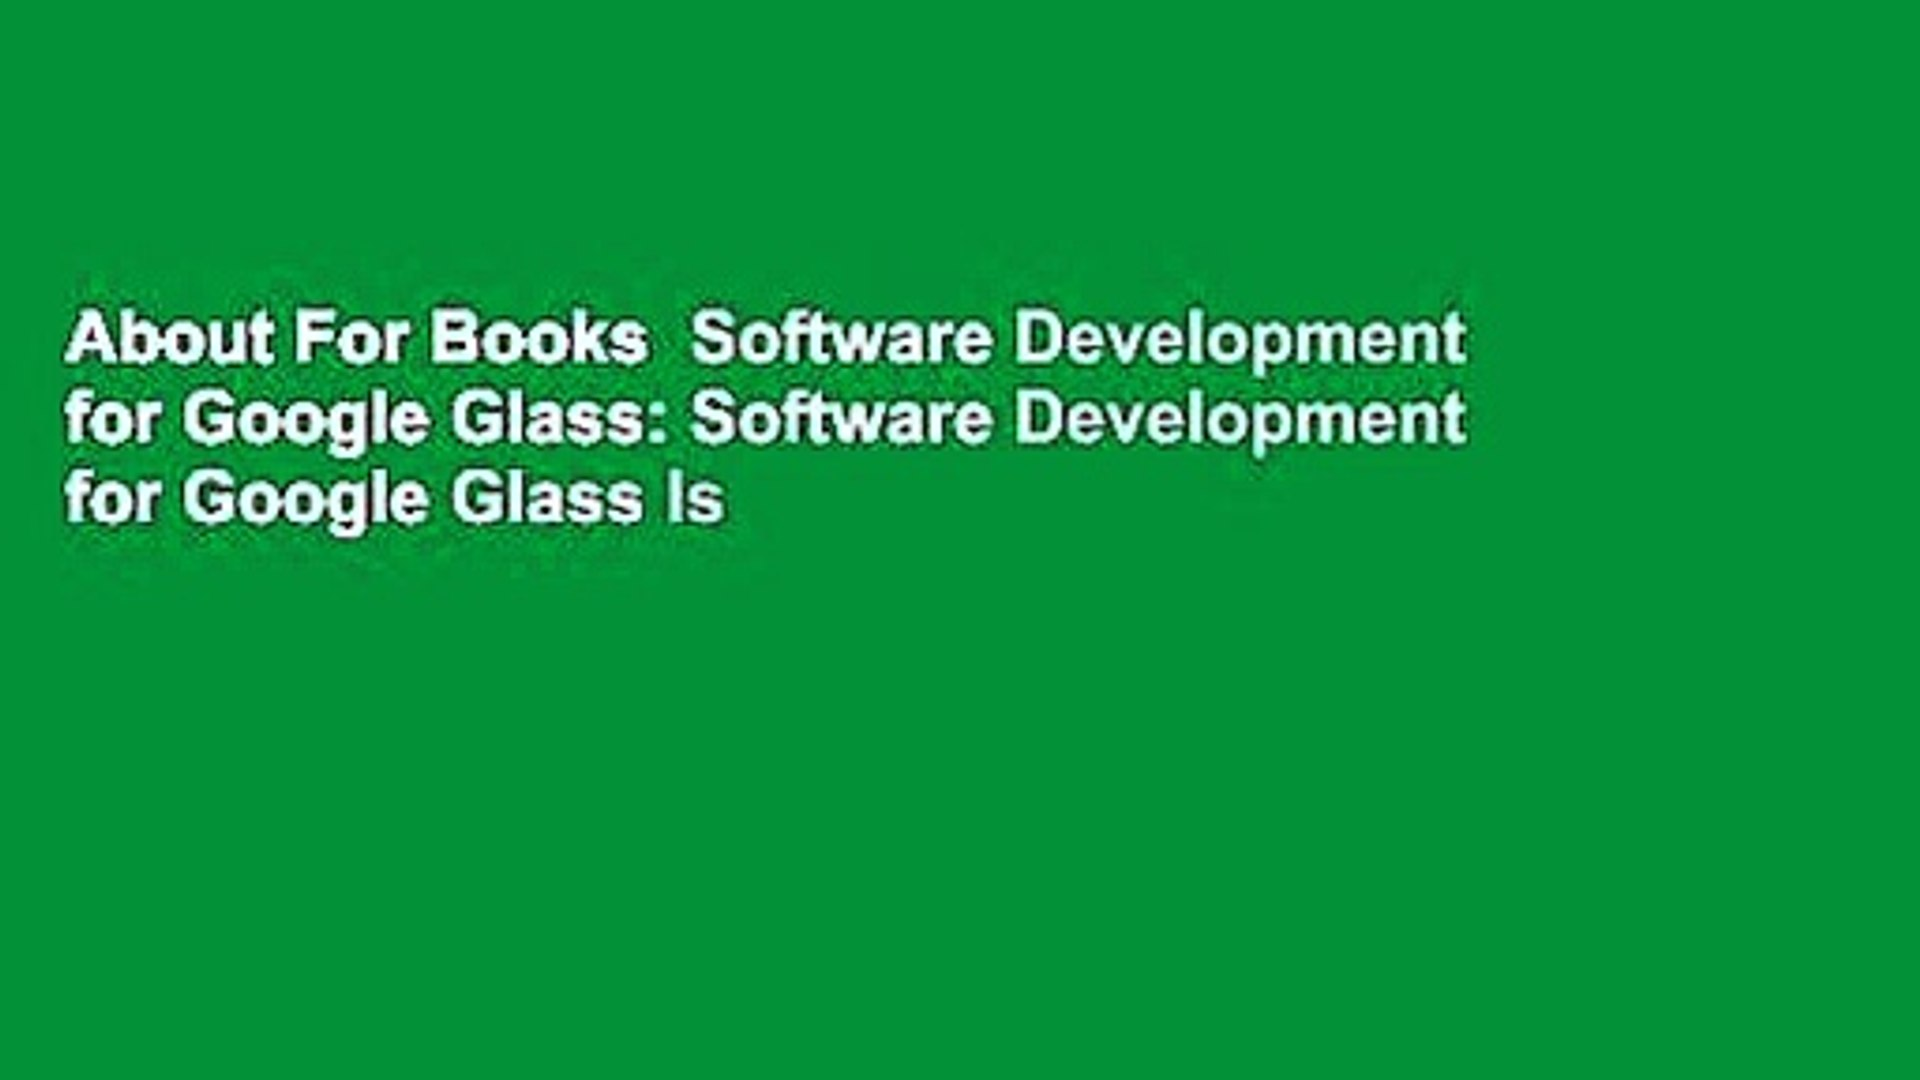 About For Books  Software Development for Google Glass: Software Development for Google Glass Is